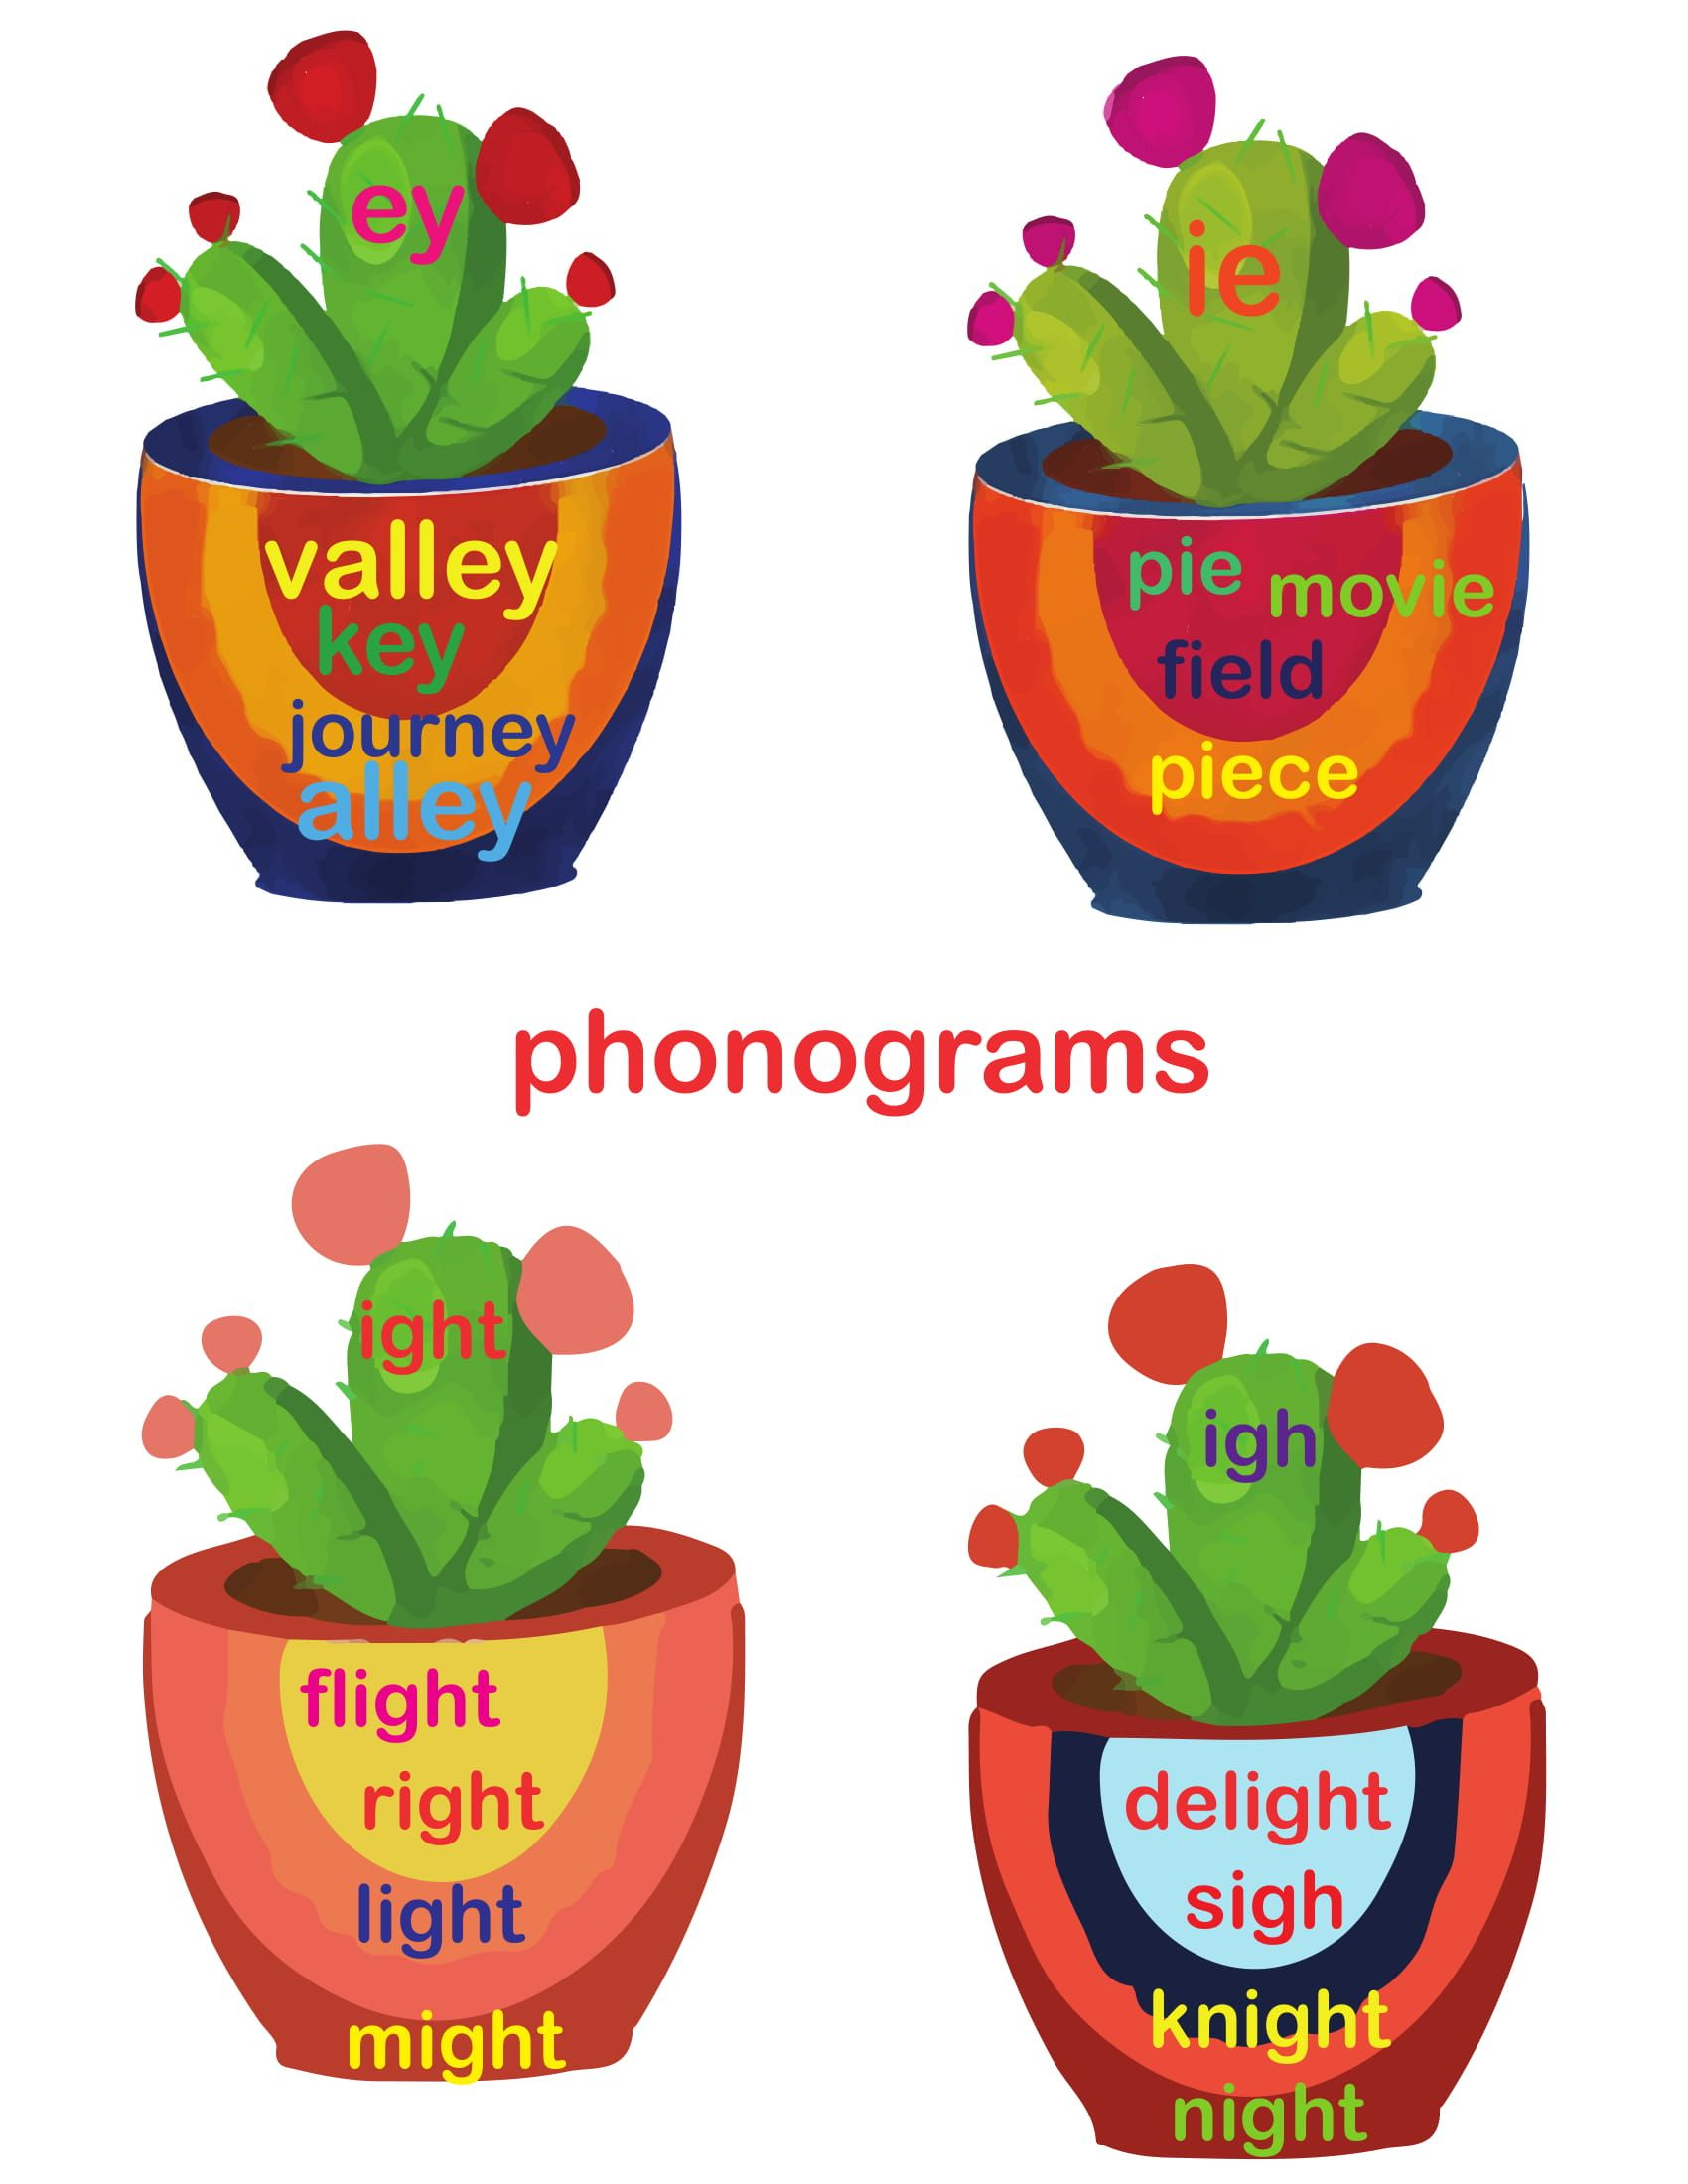 Phonograms Practice Sounds Ie Ey Igh Ight